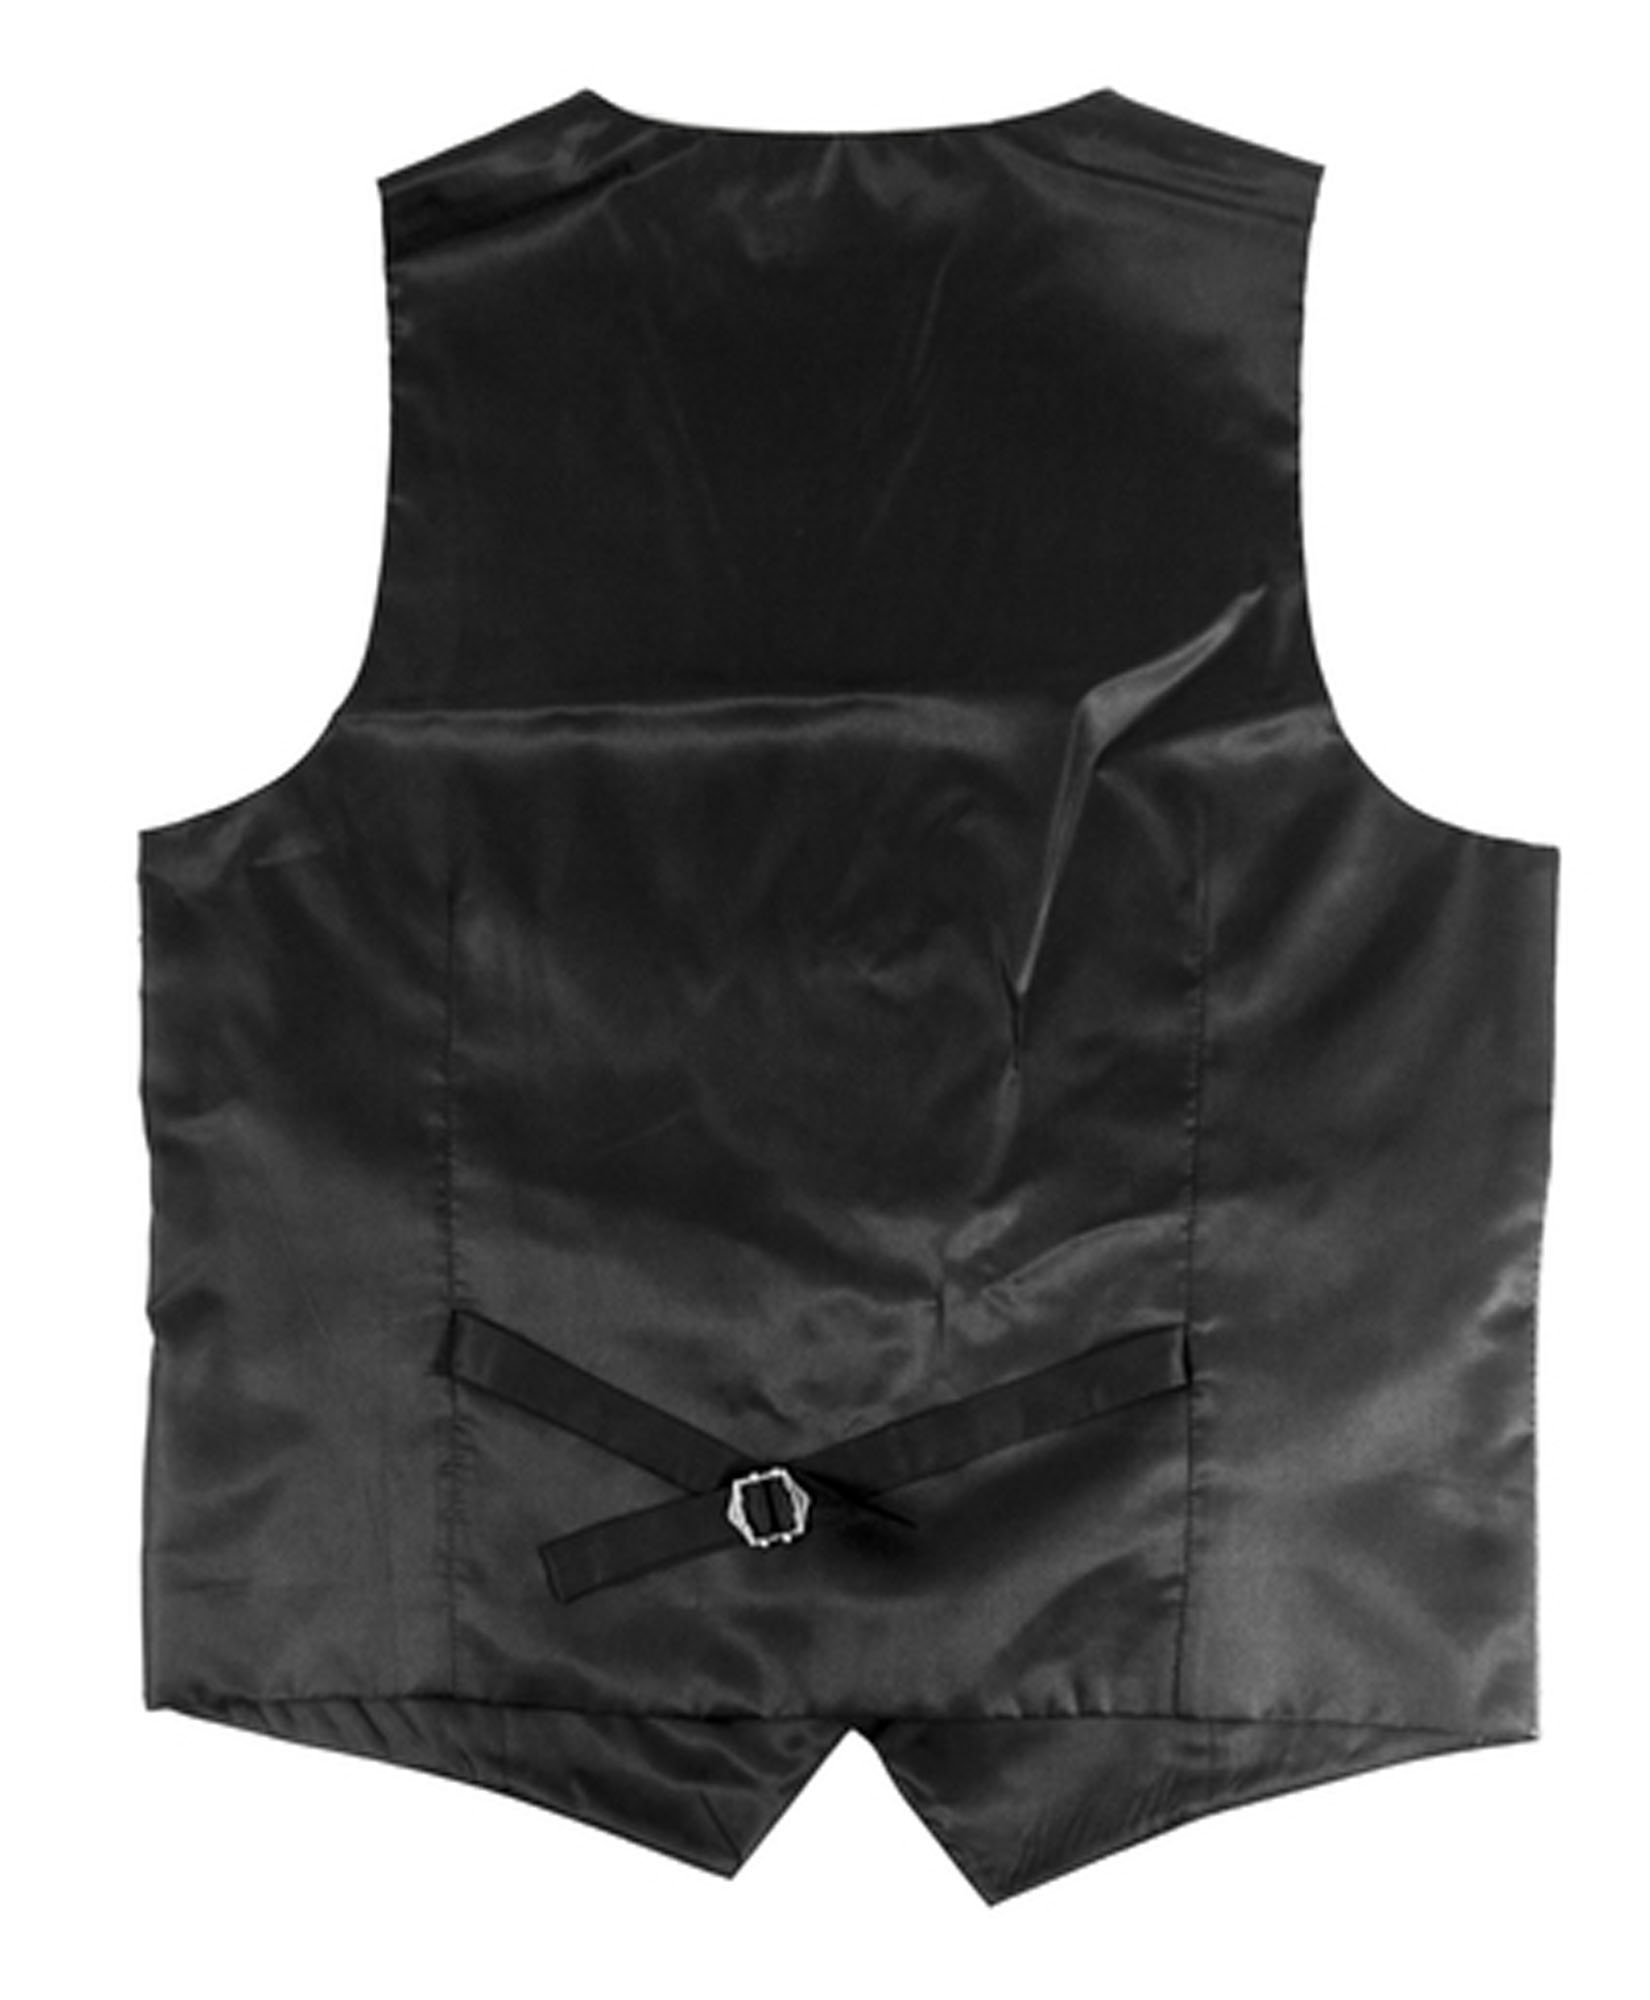 boxed-gifts Men's Rayon/Polyester Tuxedo Vest by boxed-gifts (Image #2)